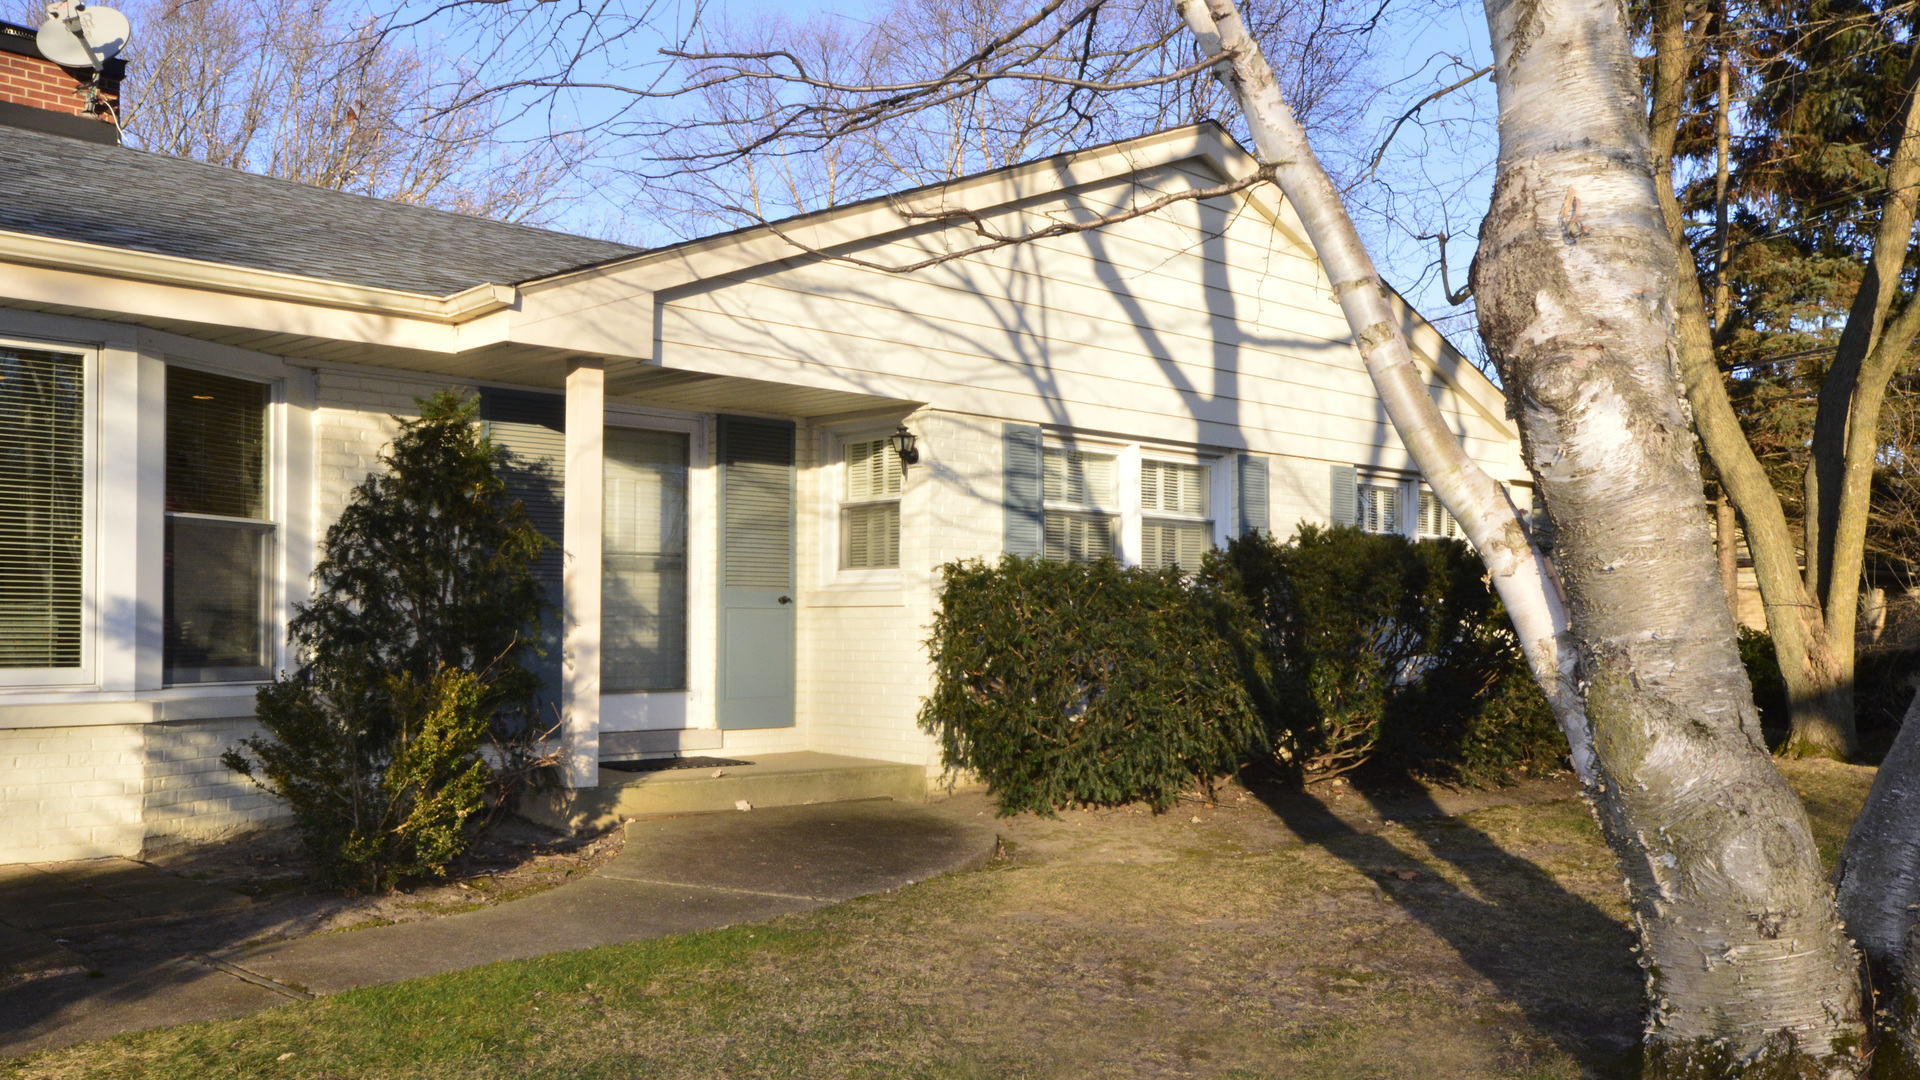 9301 Avers Avenue, Evanston in Cook County, IL 60203 Home for Sale